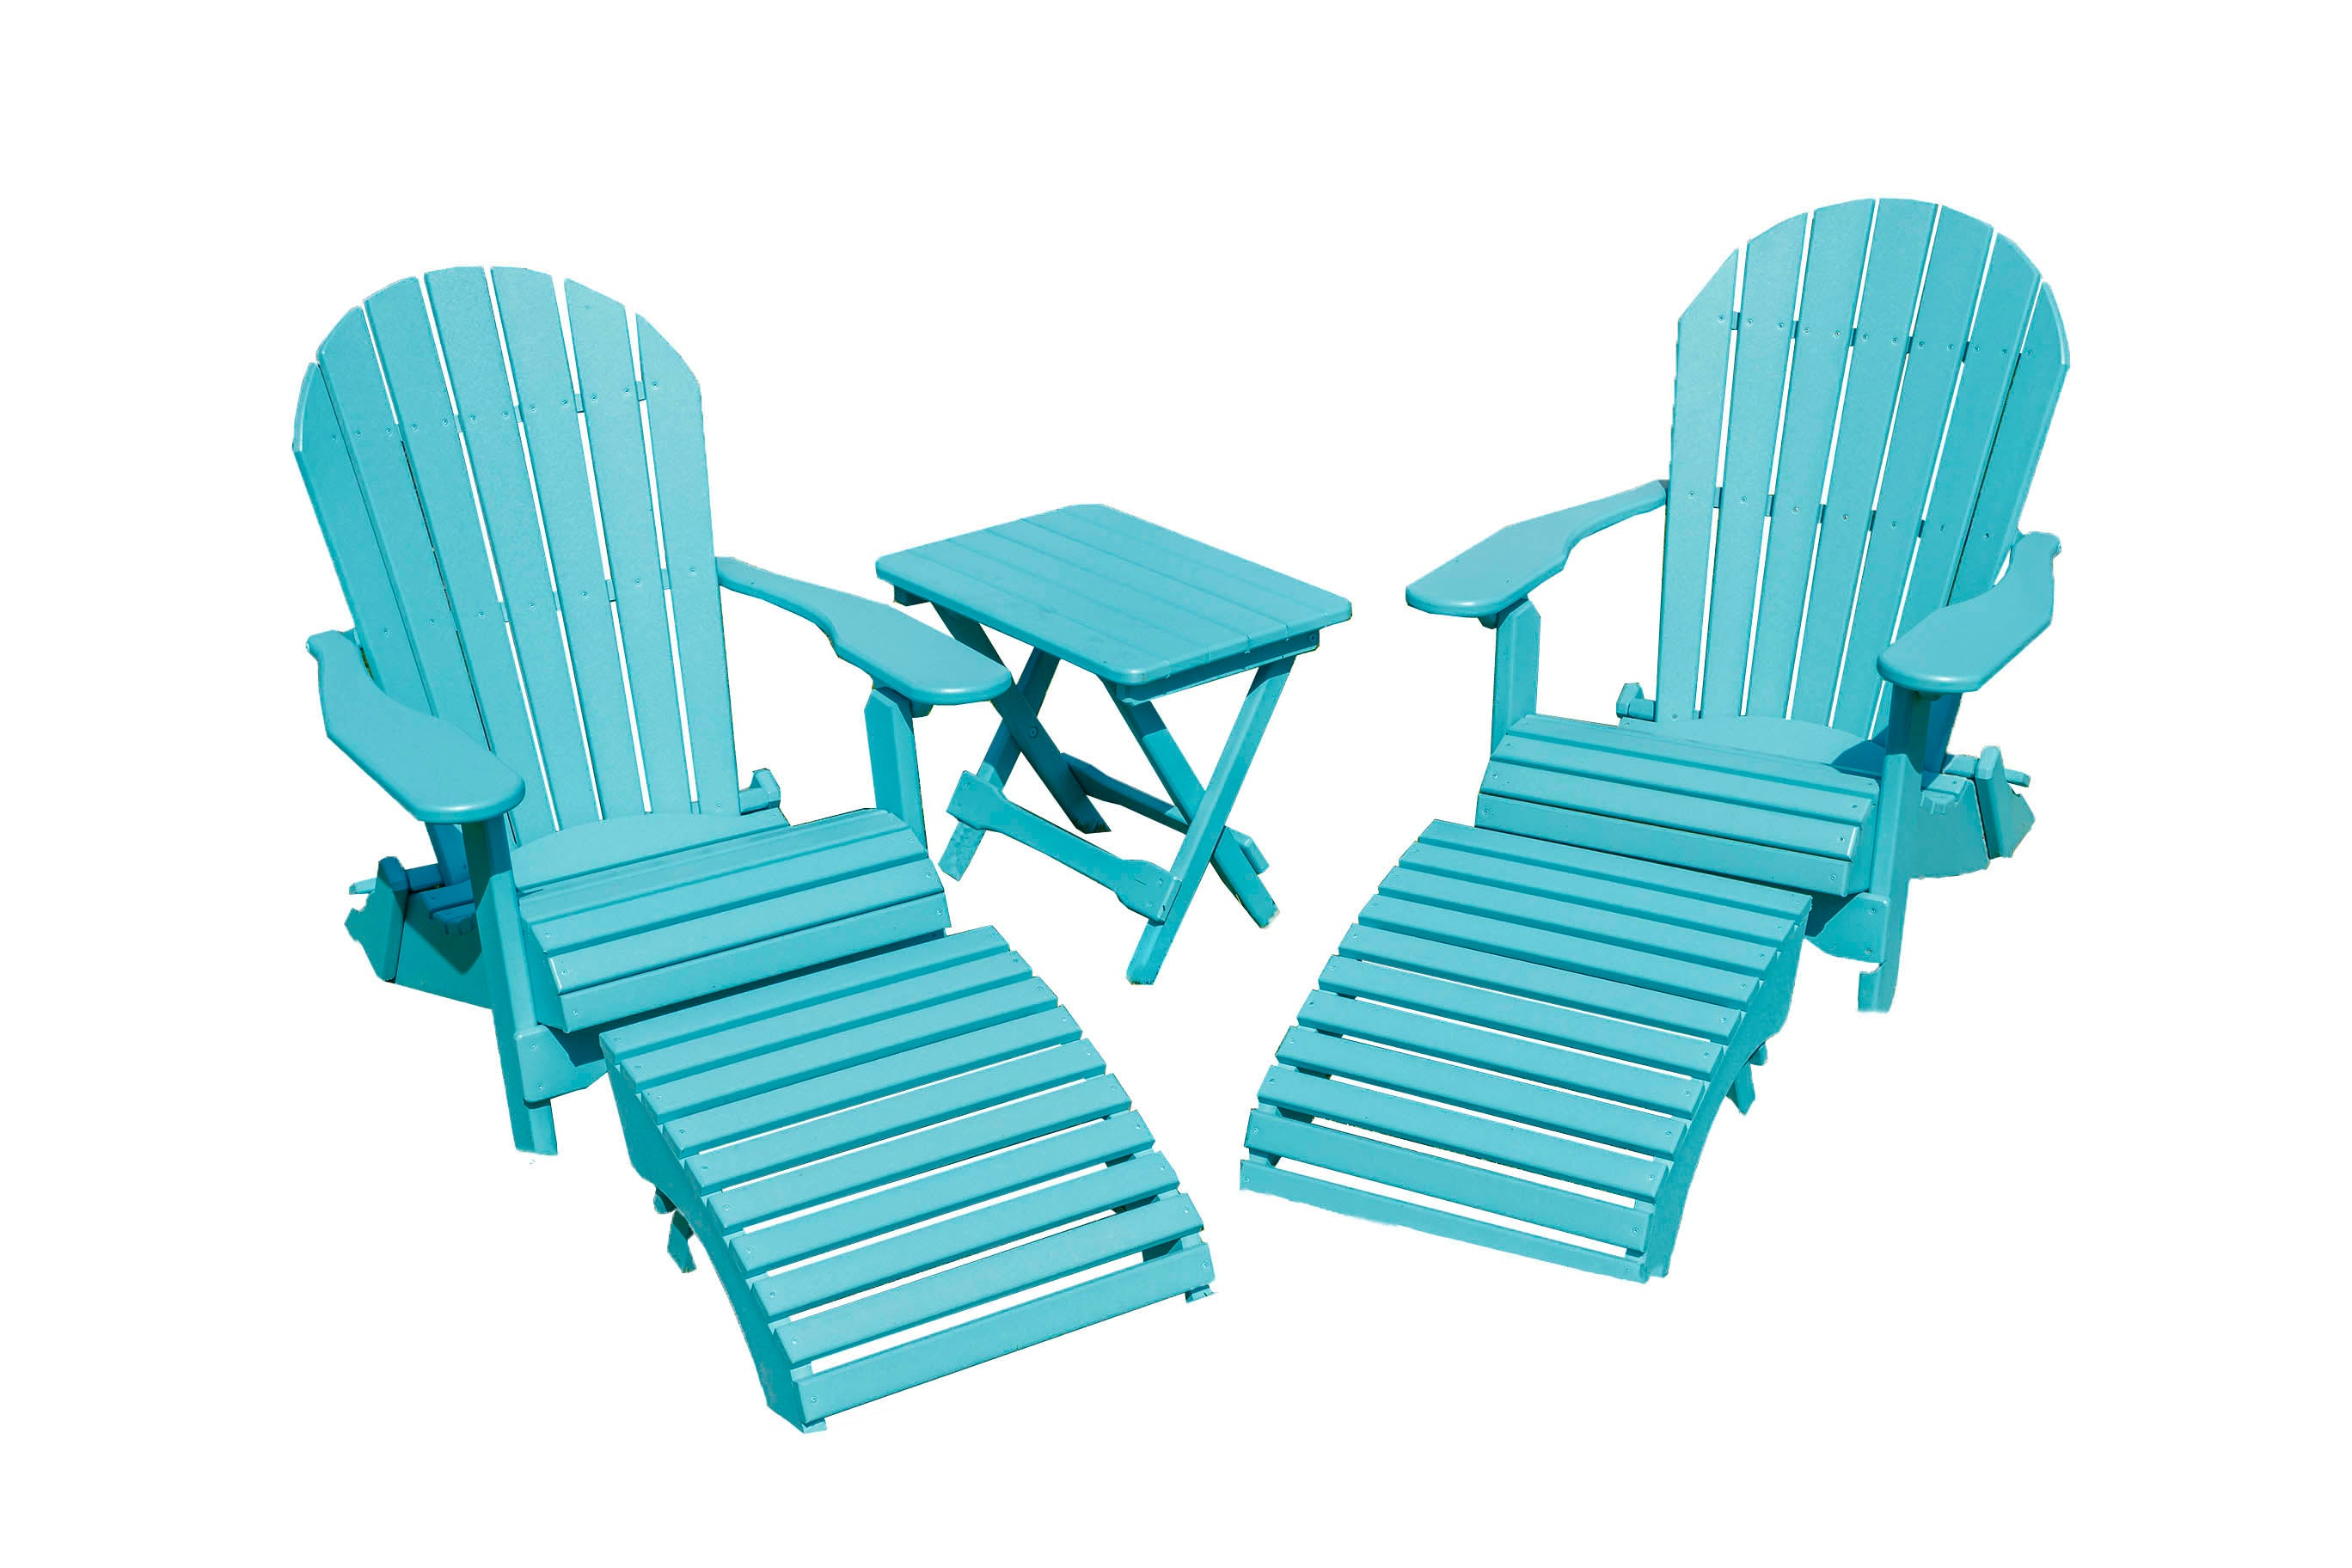 Outdoor Furniture Poly Lumber Patio Porch Folding Adirondack Chair Set